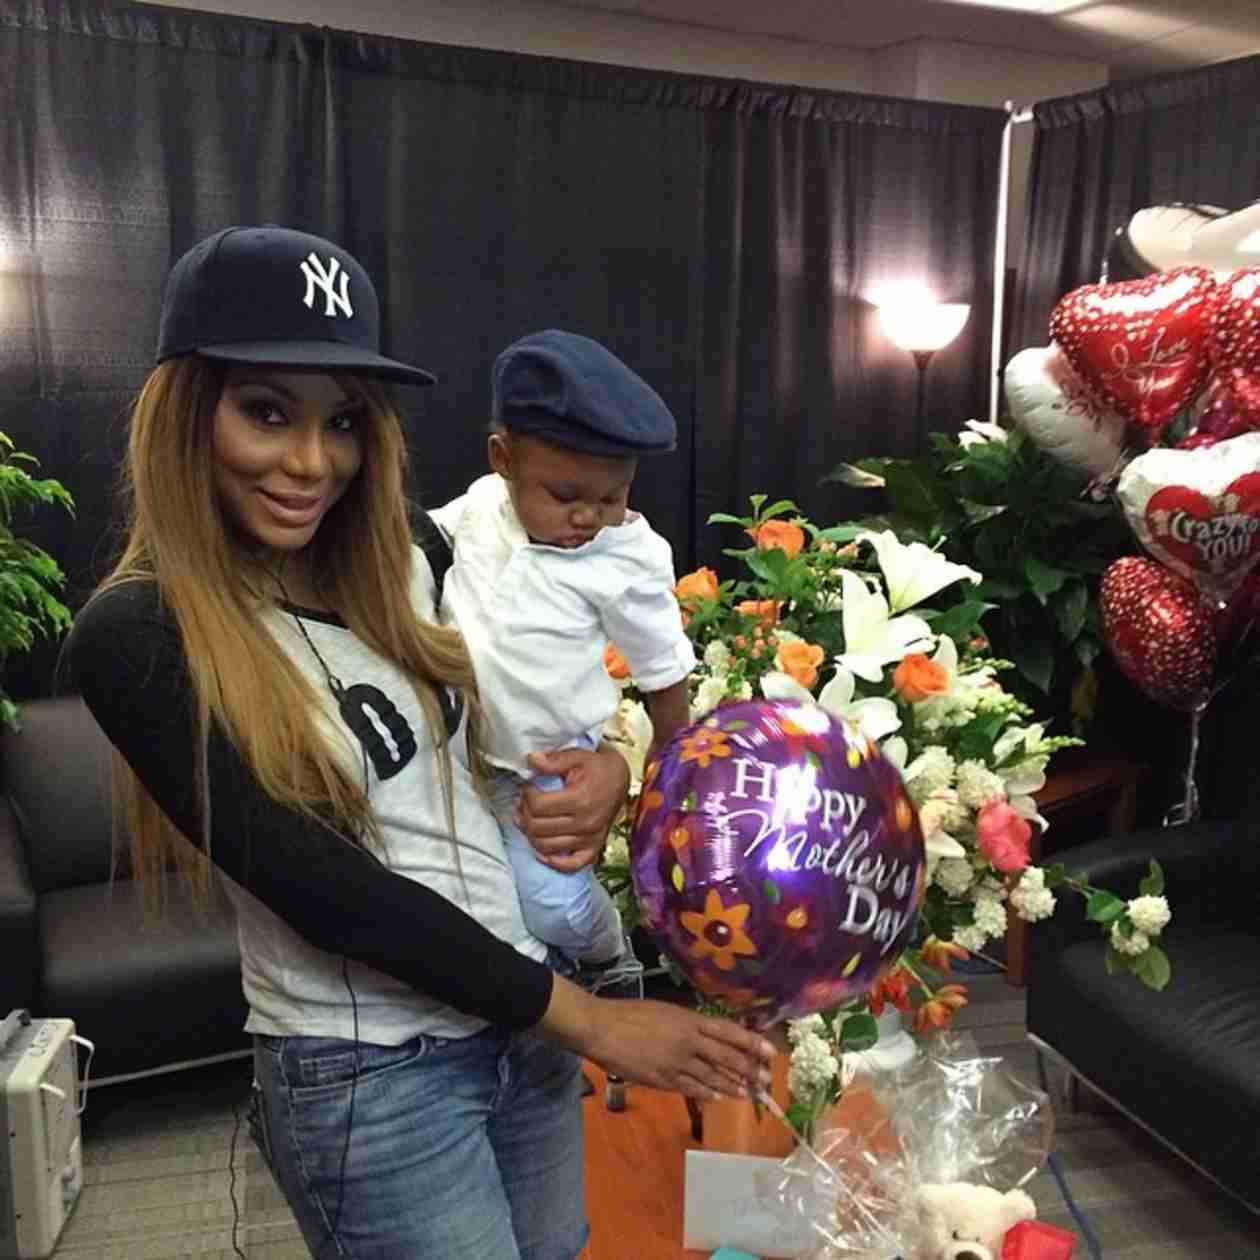 Tamar Braxton Celebrates First Mother's Day With Son and Husband at Concert (VIDEO)